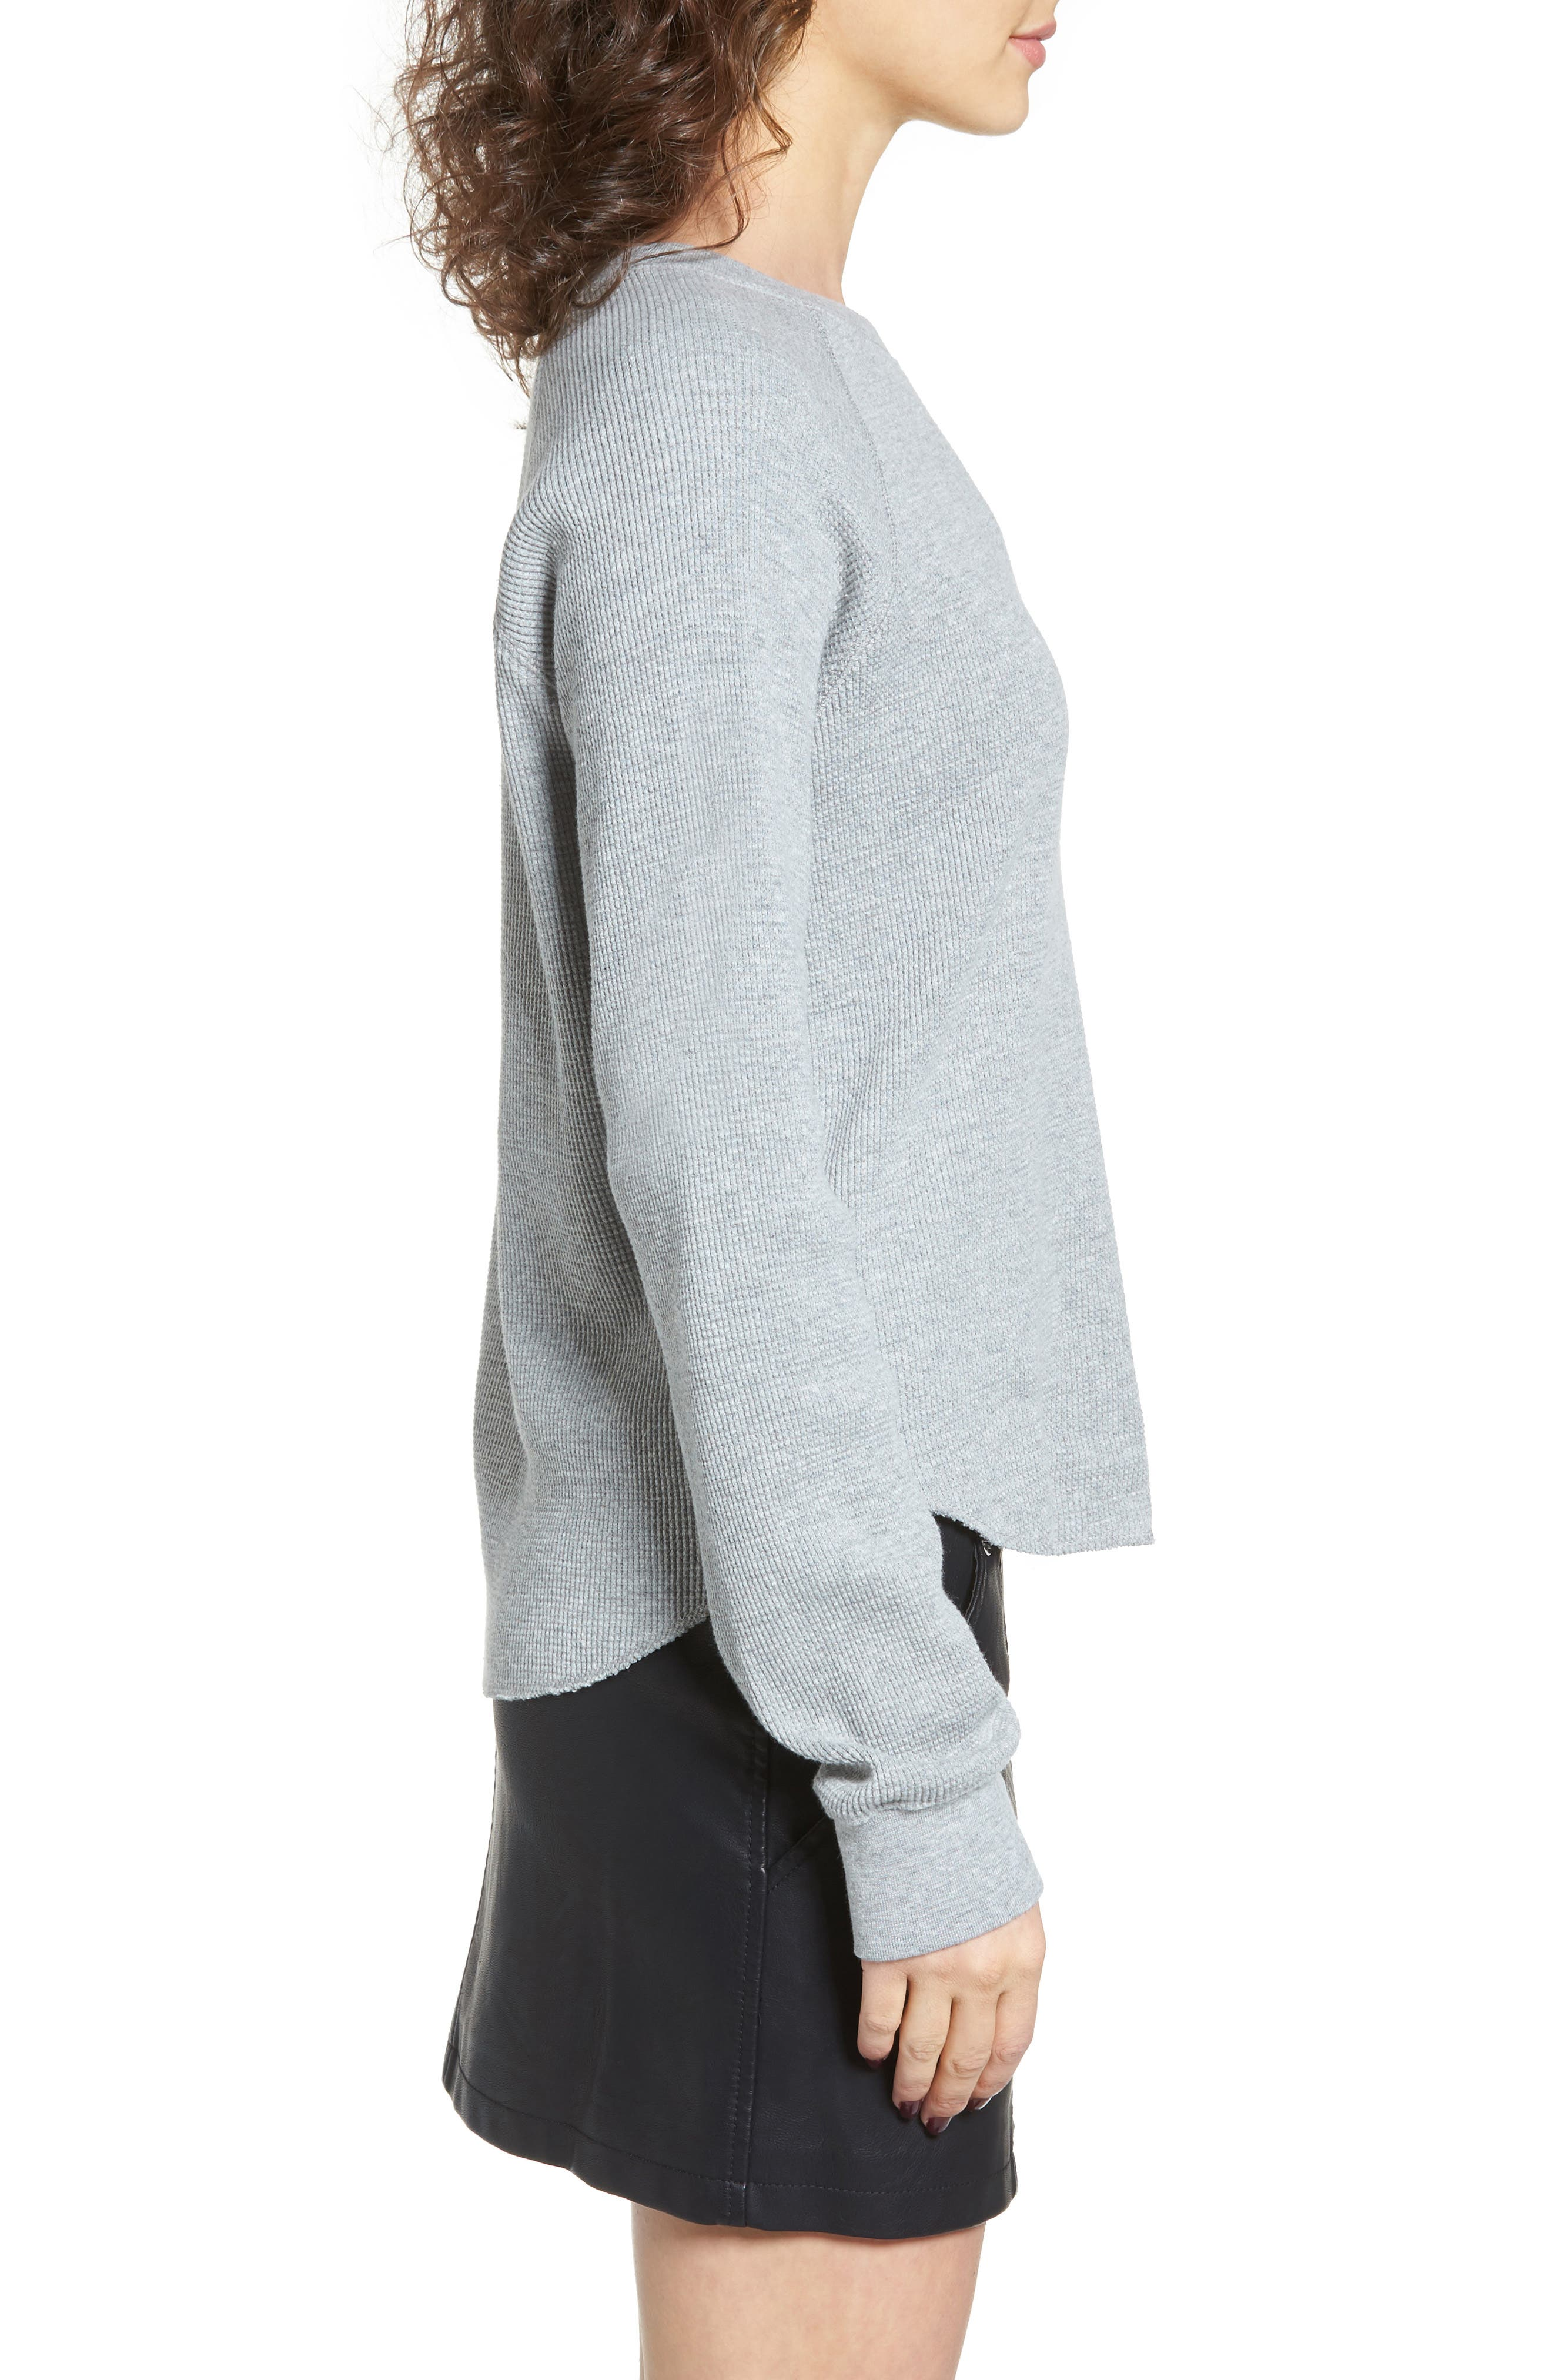 Dune Thermal Top,                             Alternate thumbnail 3, color,                             Heather Grey